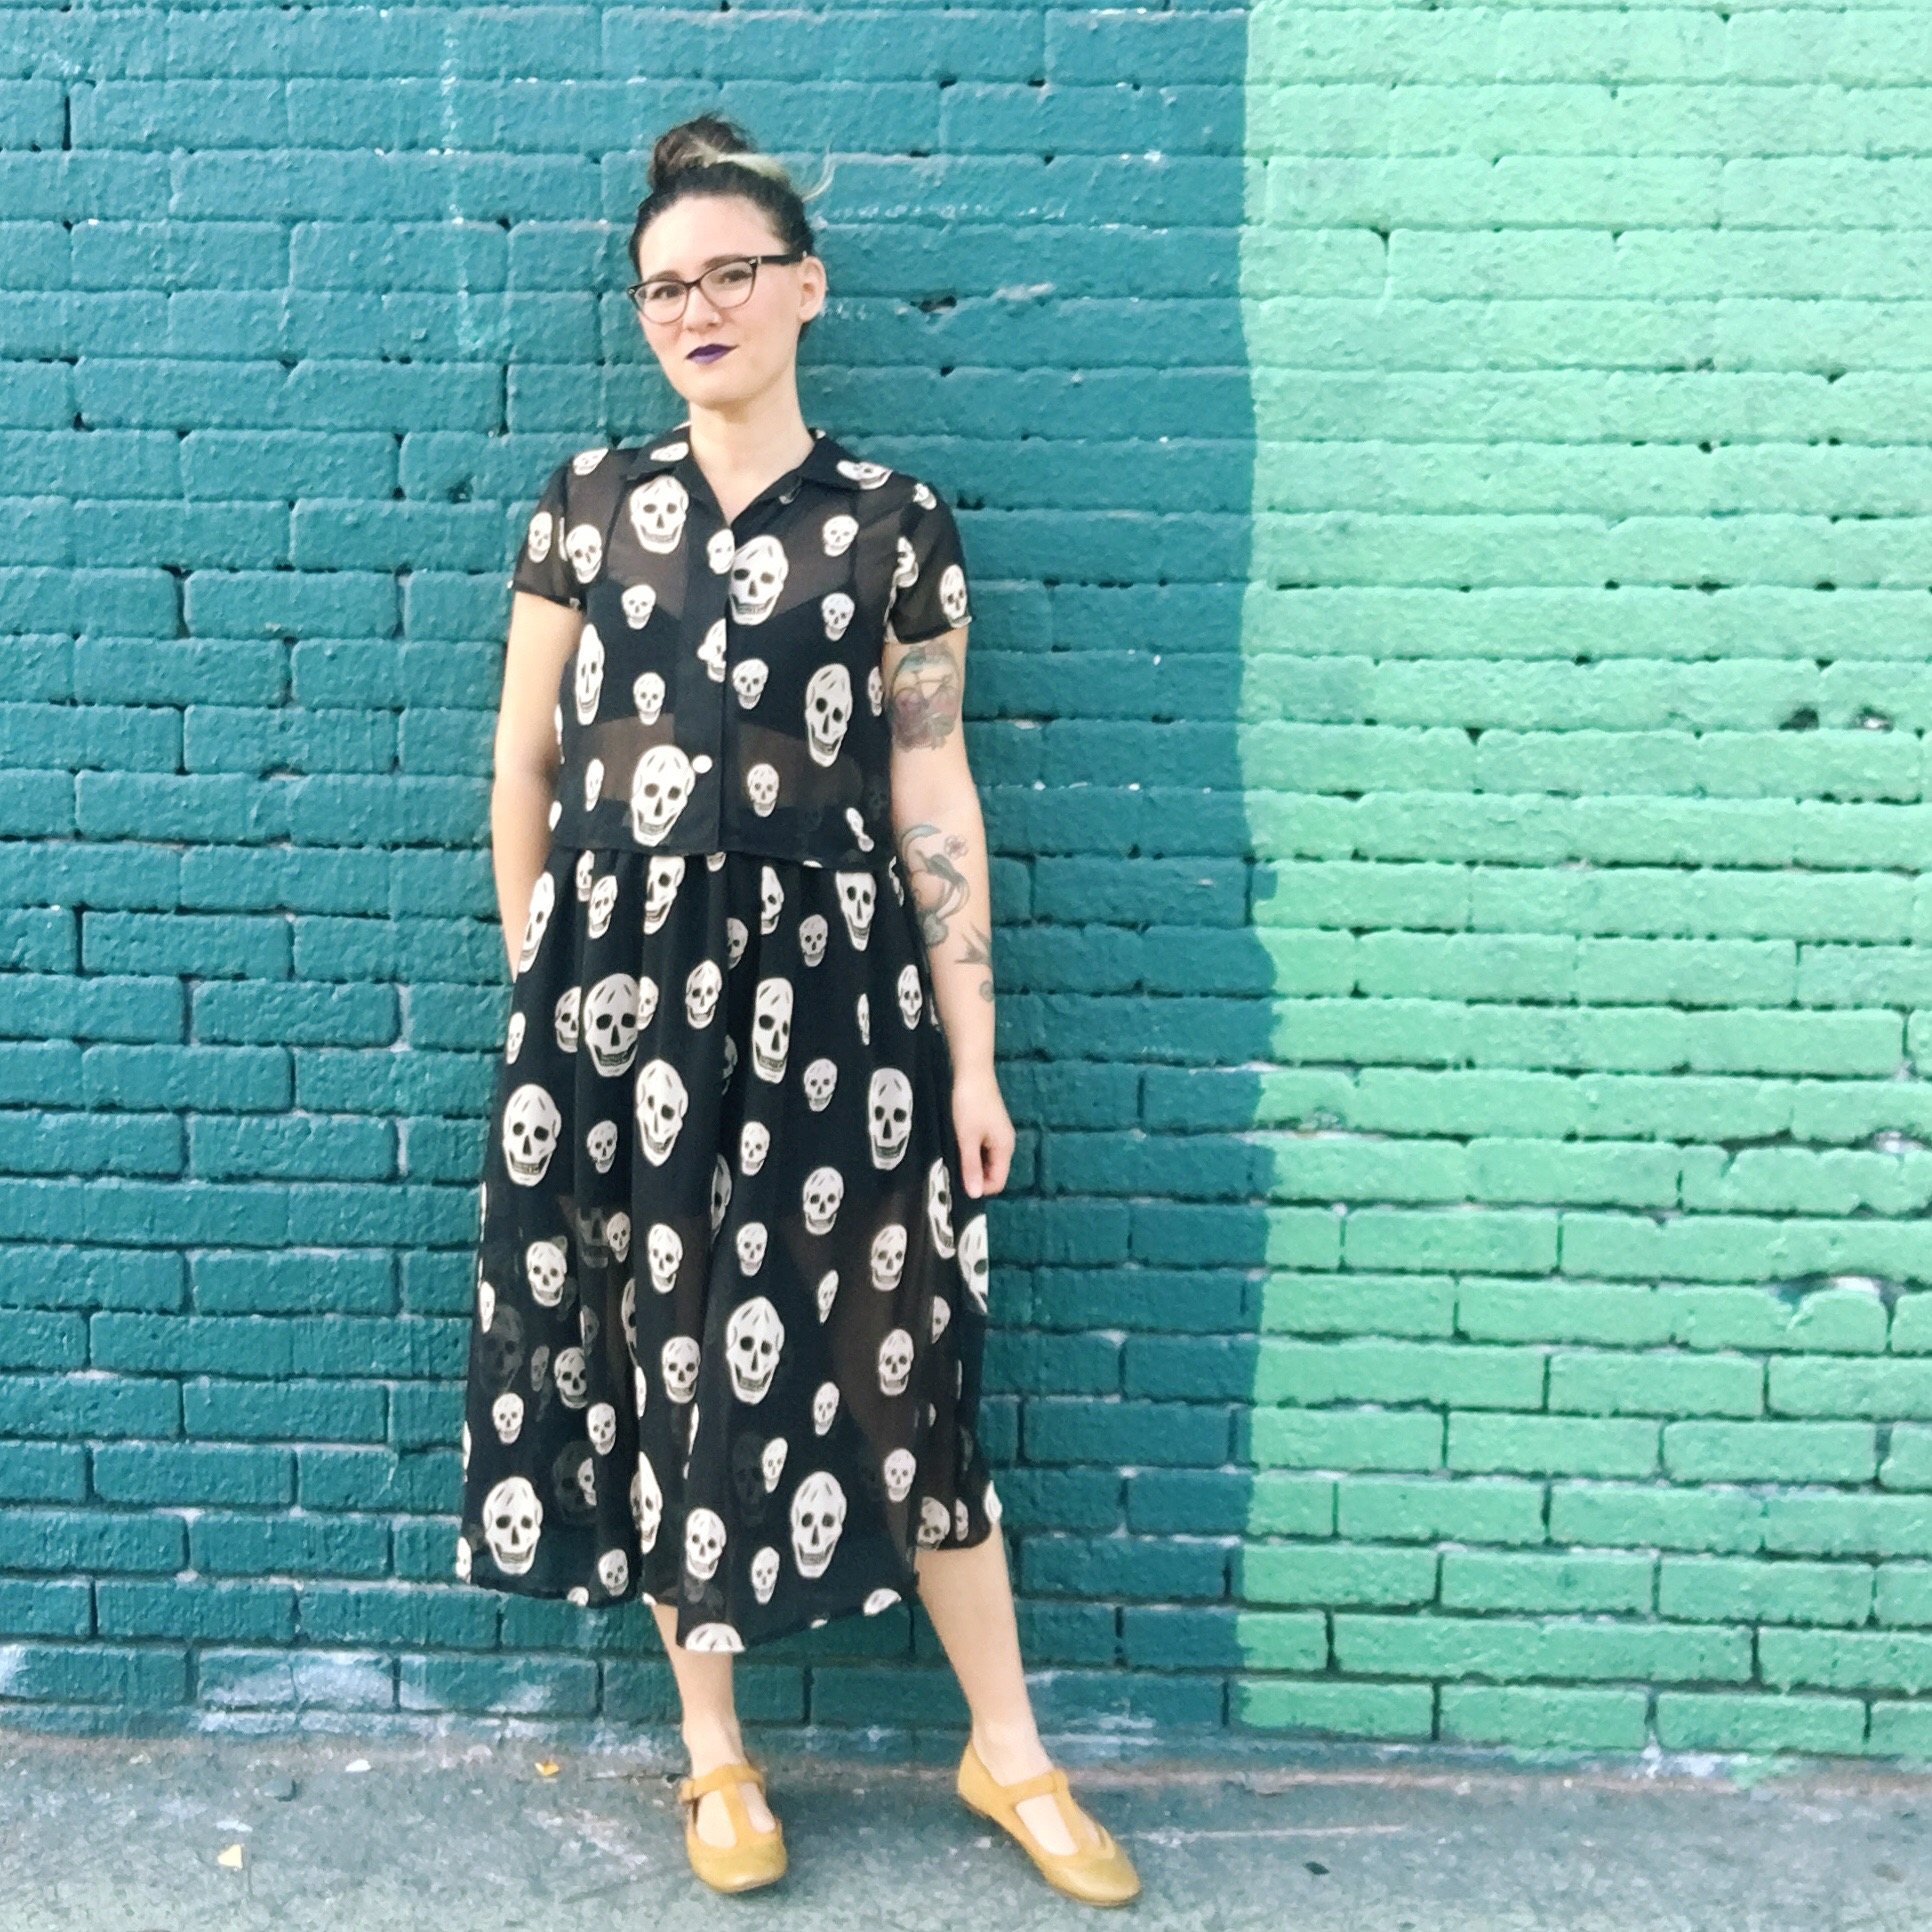 Outfit details:  top  and  skirt  are both BurdaStyle patterns sewn in deadstock chiffon from SAS fabrics in Hawthorne. Layered over this  Ohhhlulu bralette  made from stretch velvet from Joann fabrics  (similar) . Glasses are from  Zenni Optical  and shoes are old af